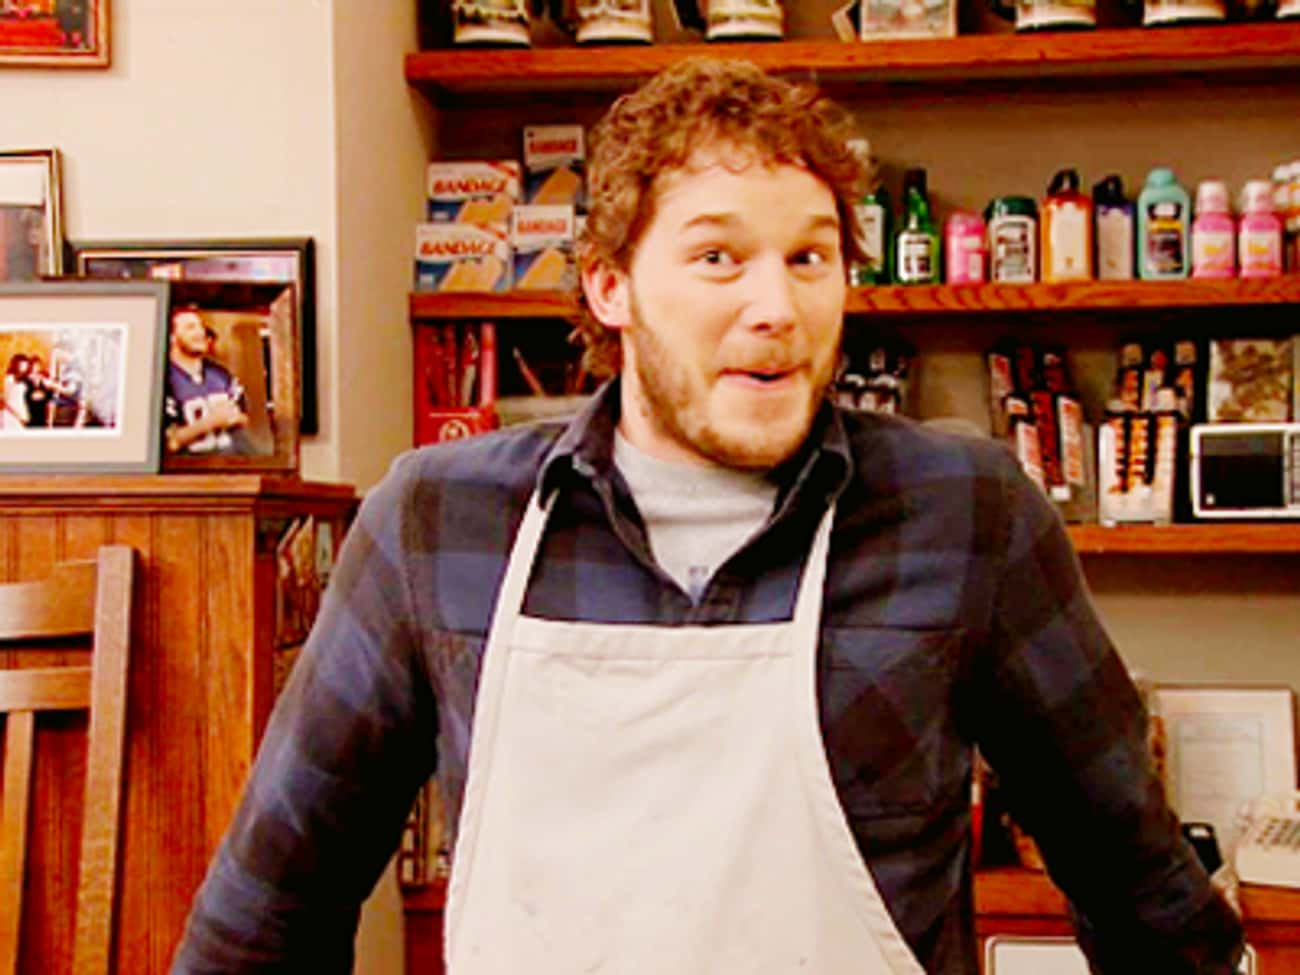 Andy Dwyer is listed (or ranked) 2 on the list The Most Memorable Ex-Boyfriends In TV History